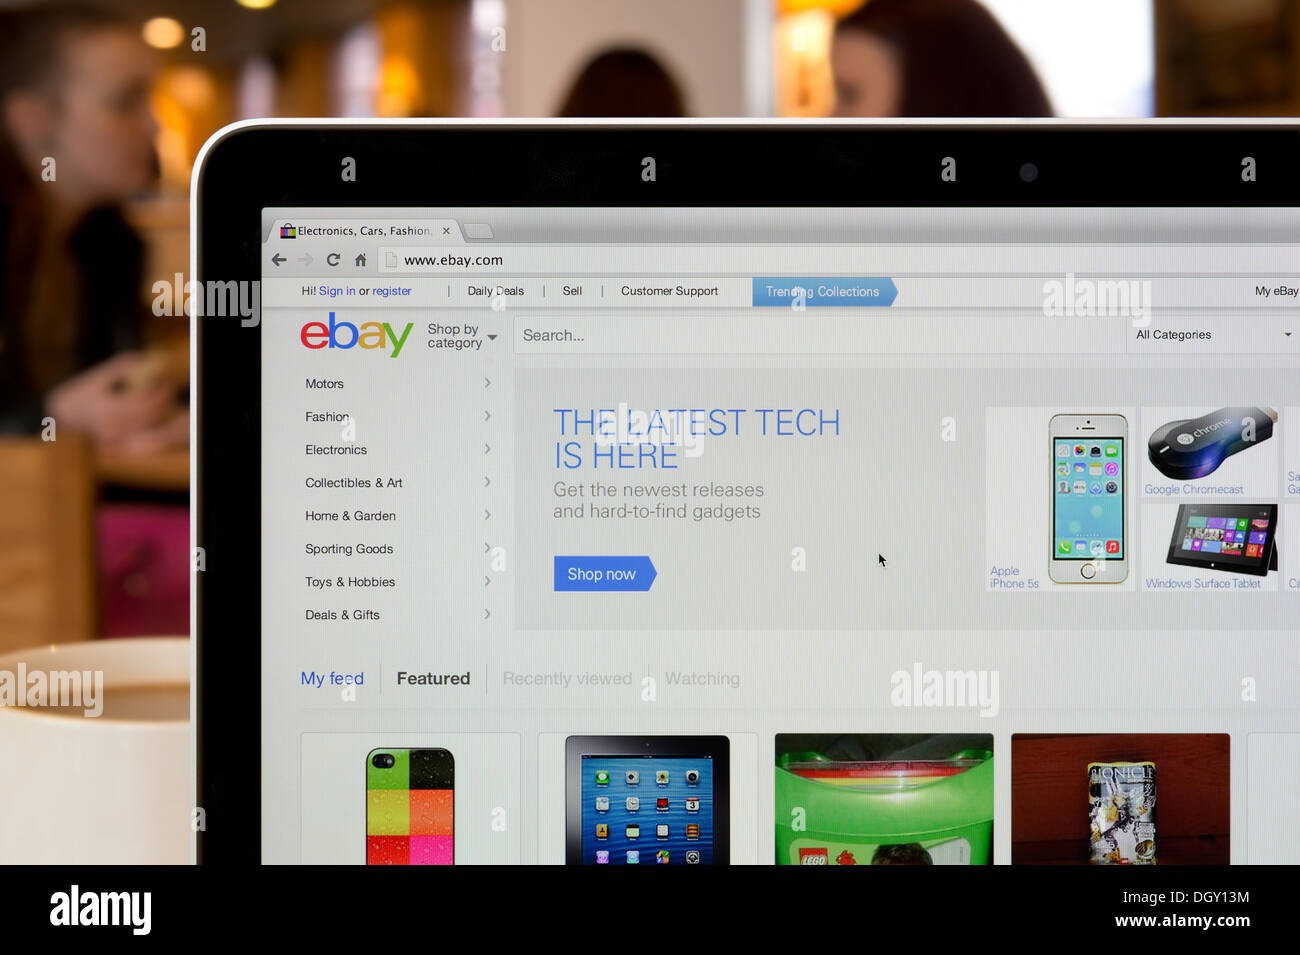 The ebay website shot in a coffee shop environment (Editorial use only: print, TV, e-book and editorial website). - Stock Image